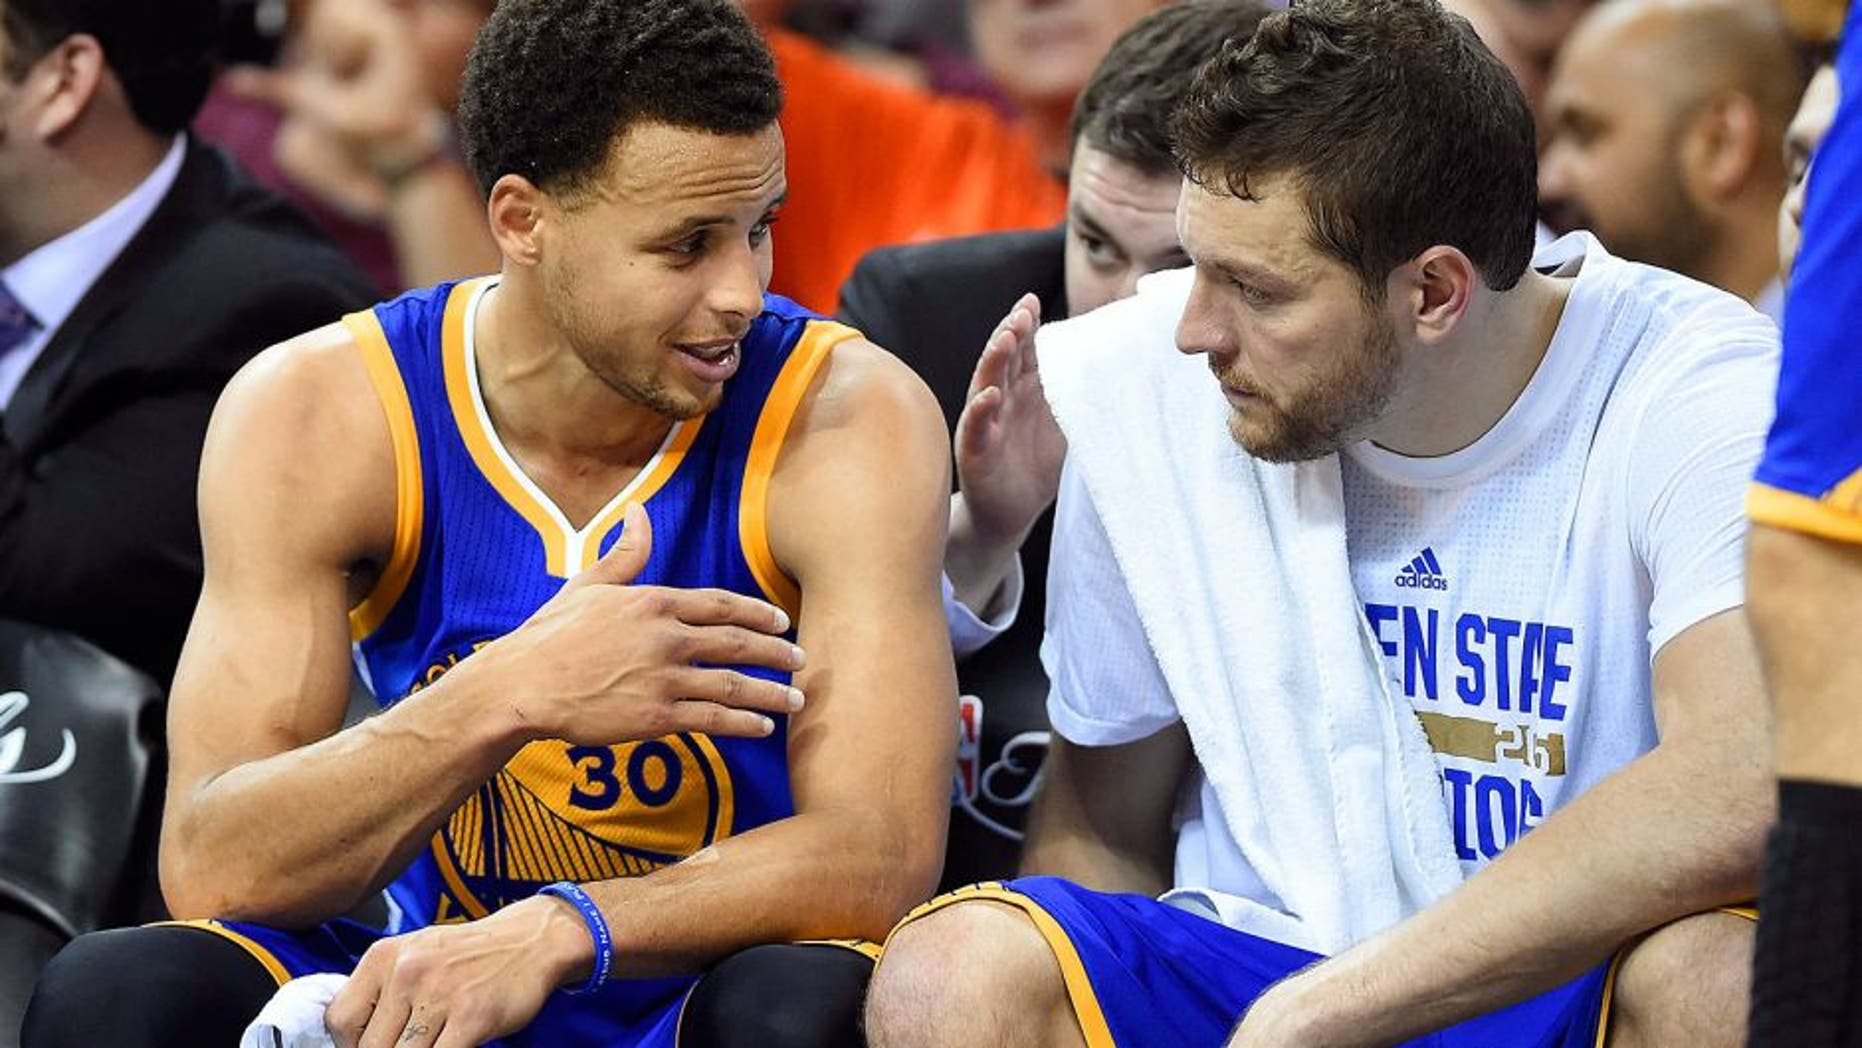 Jun 11, 2015; Cleveland, OH, USA; Golden State Warriors guard Stephen Curry (30) talks to forward David Lee (10) on the bench during the fourth quarter against the Cleveland Cavaliers in game four of the NBA Finals at Quicken Loans Arena. Mandatory Credit: Bob Donnan-USA TODAY Sports